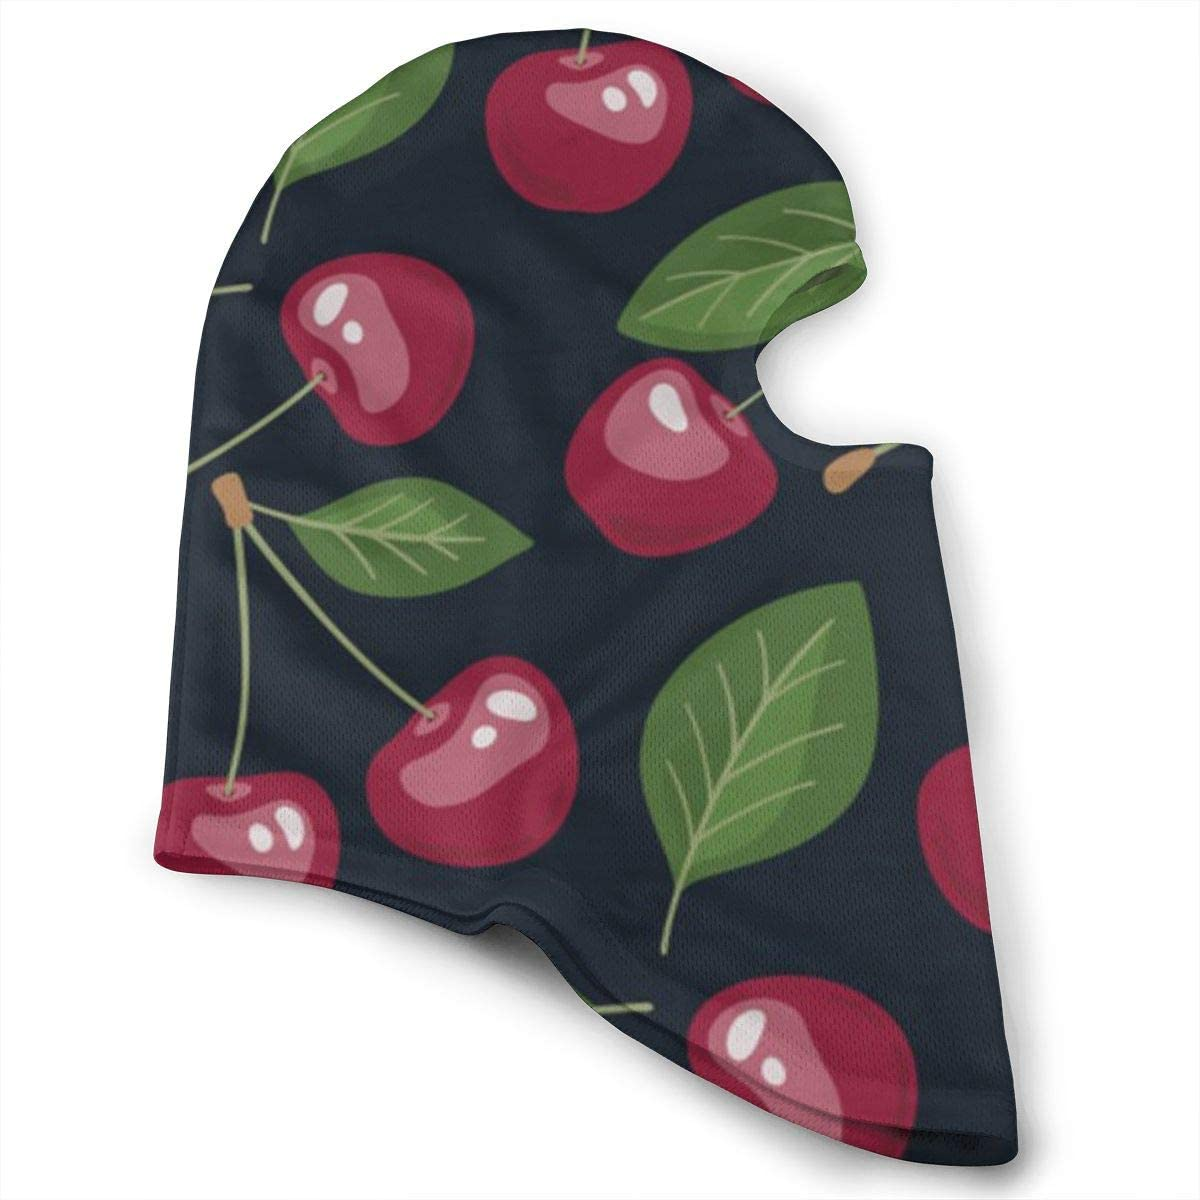 CAClifestyle Cherries and Leaves Pattern Unisex Windproof Balaclavas Full Face Mask Hood